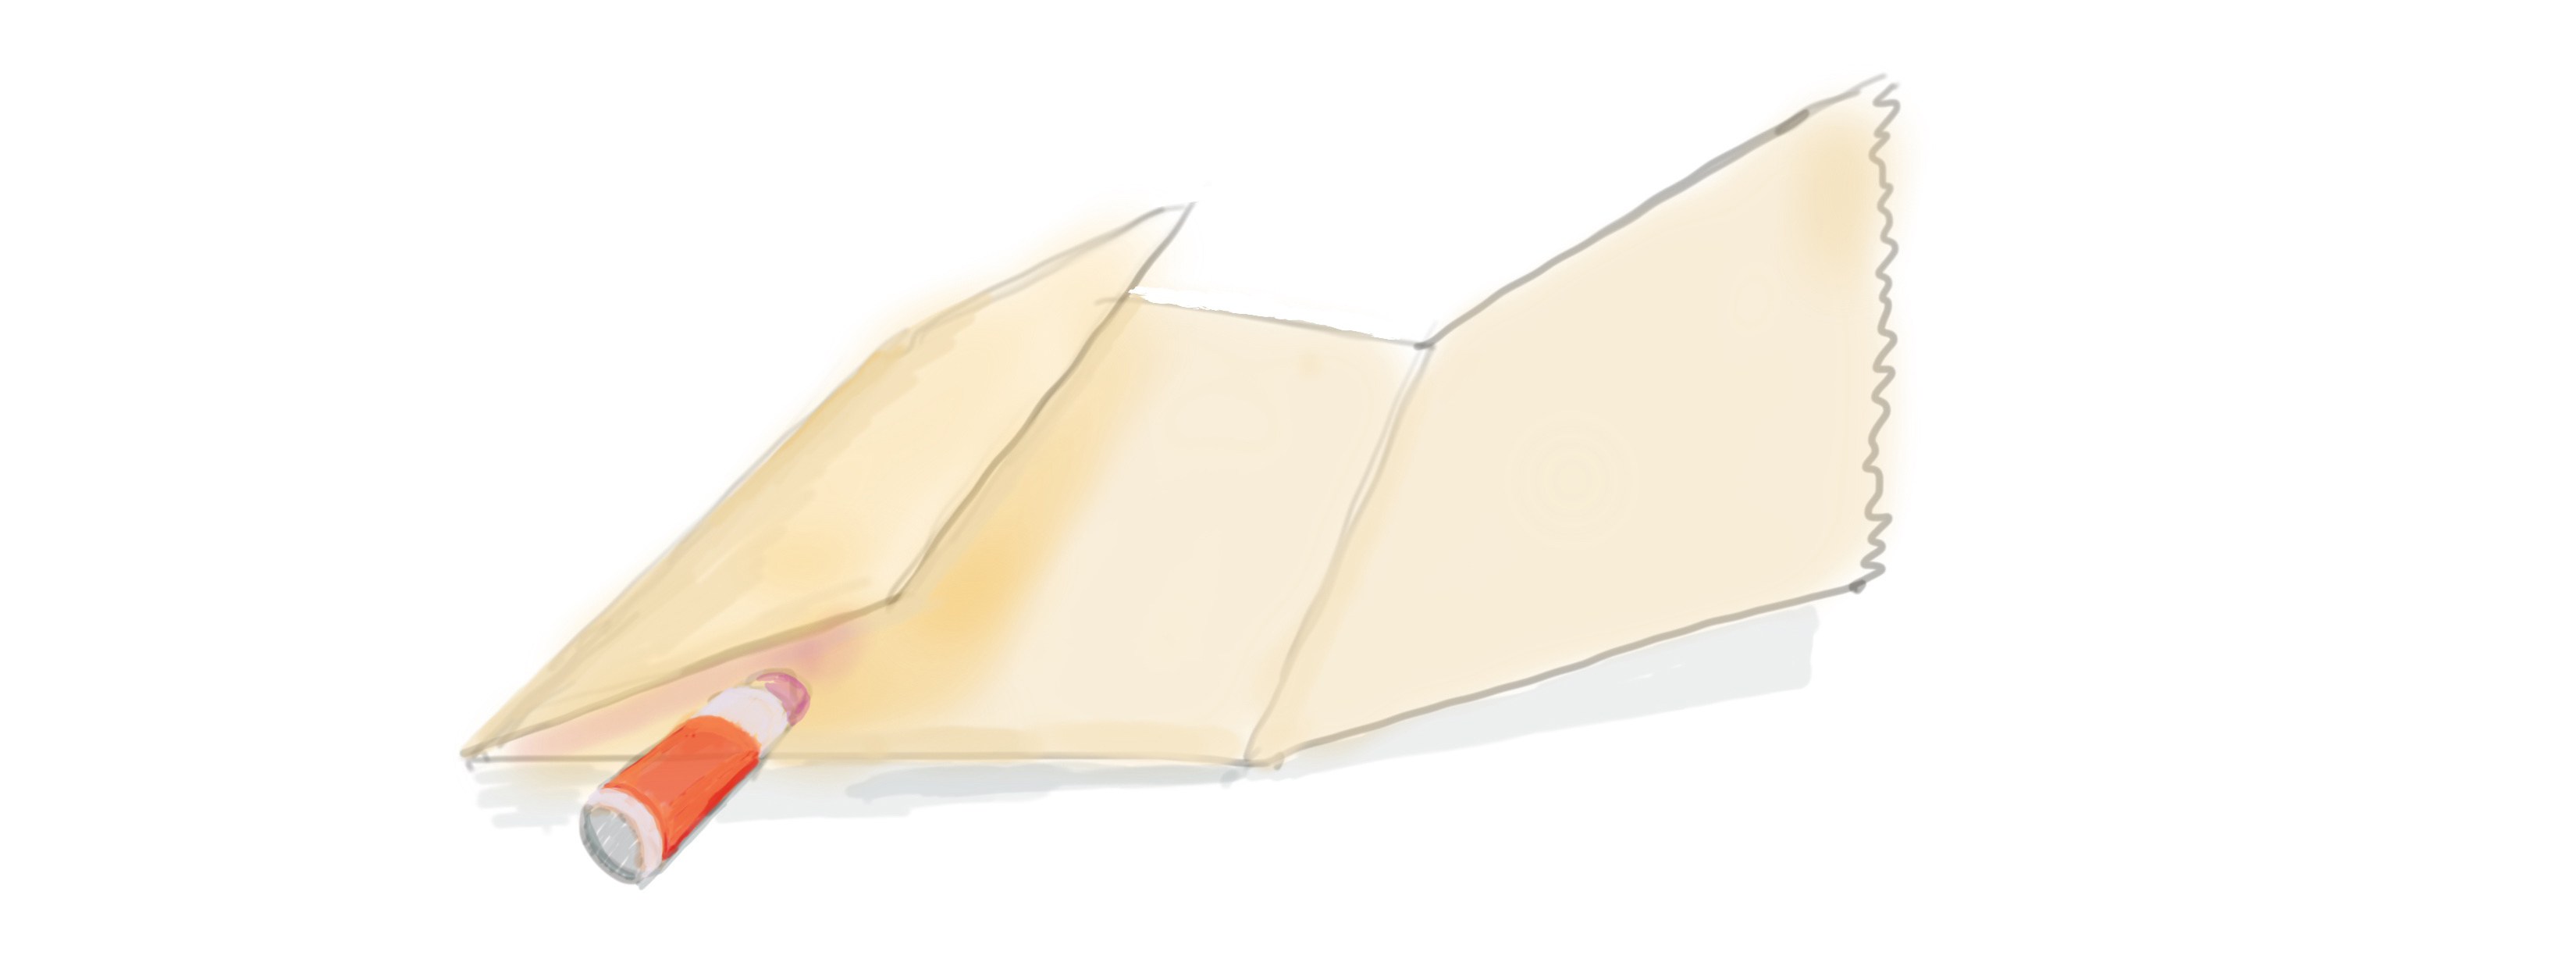 drawing of gluing the flap of the bag down